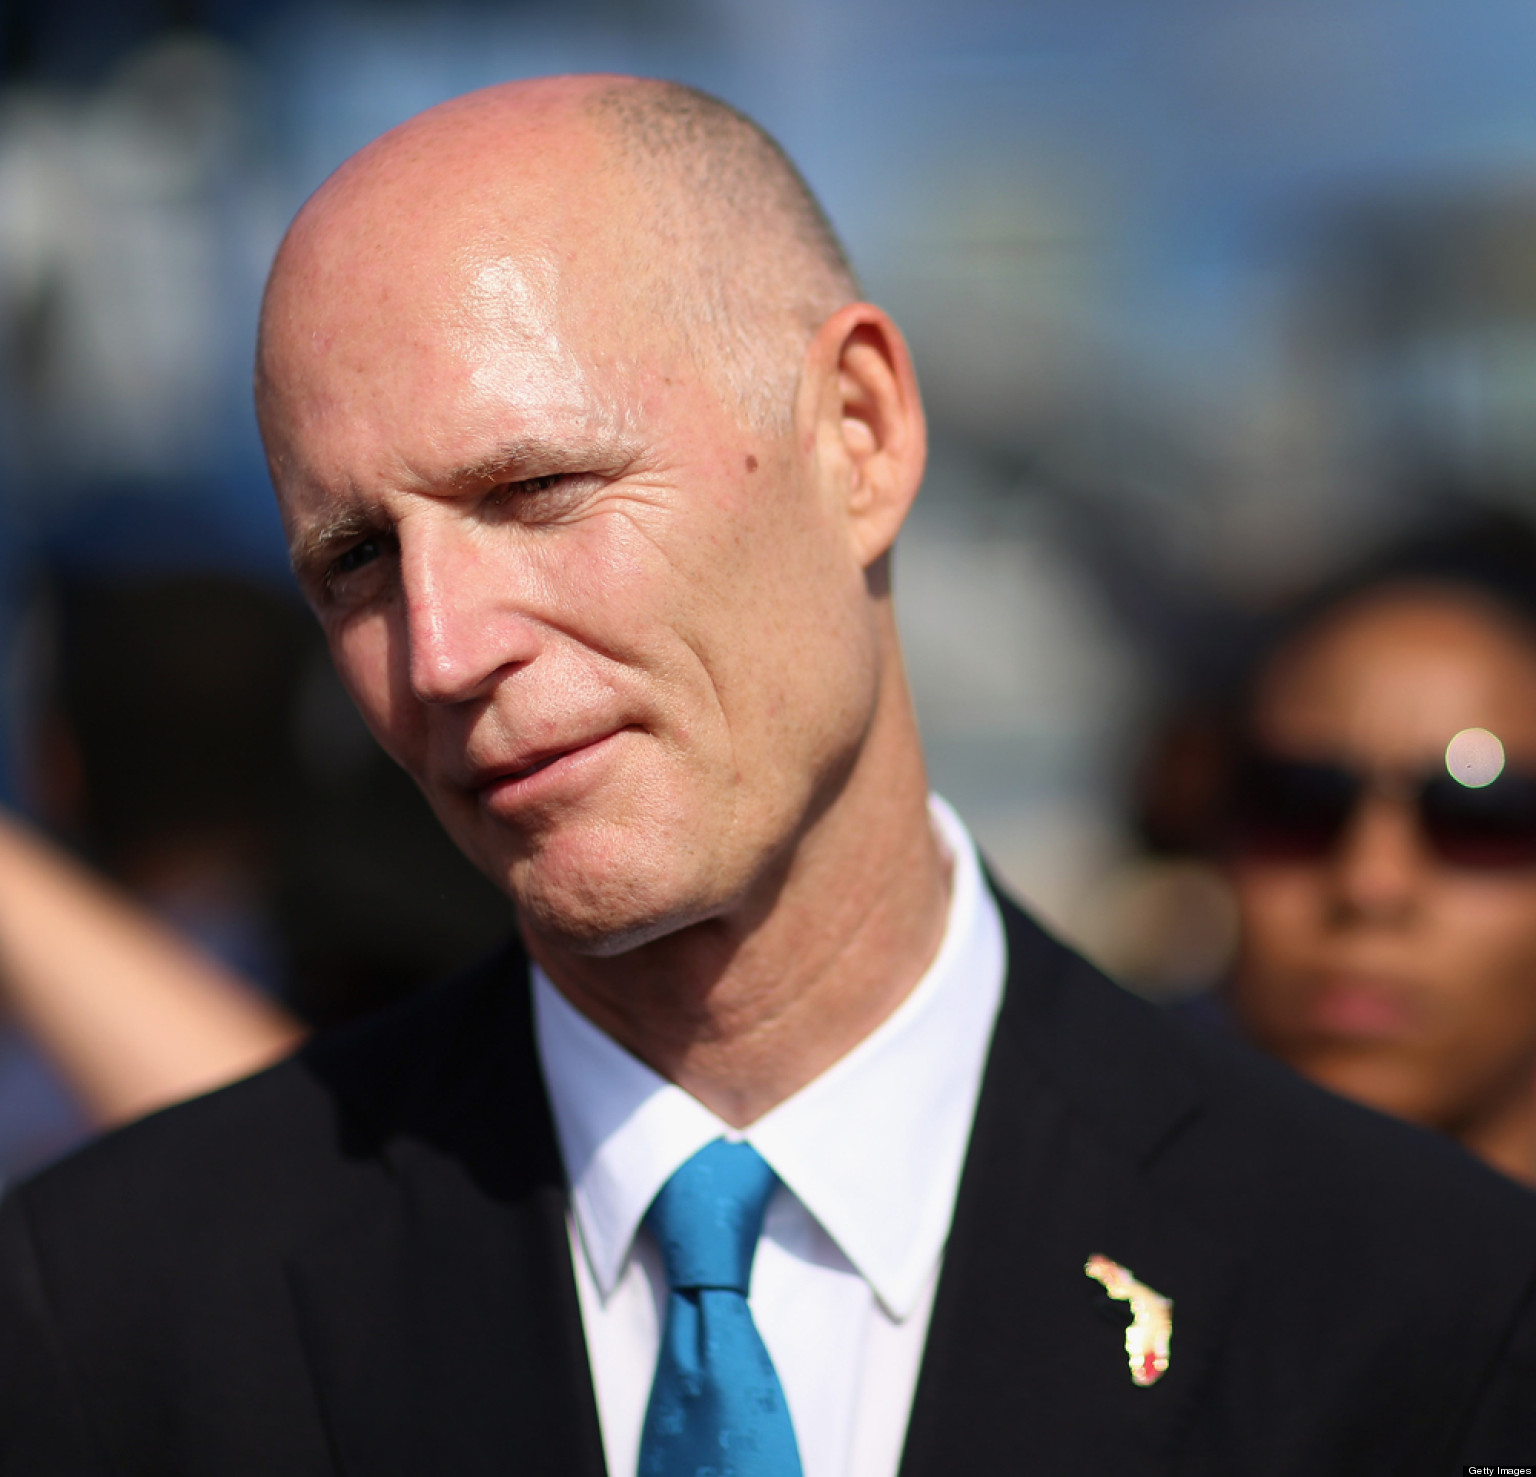 ... Rick Scott For Governor Florida governor rick scott ... - o-RICK-SCOTT-SIGNS-BUDGET-FLORIDA-GOVERNOR-VETOES-facebook